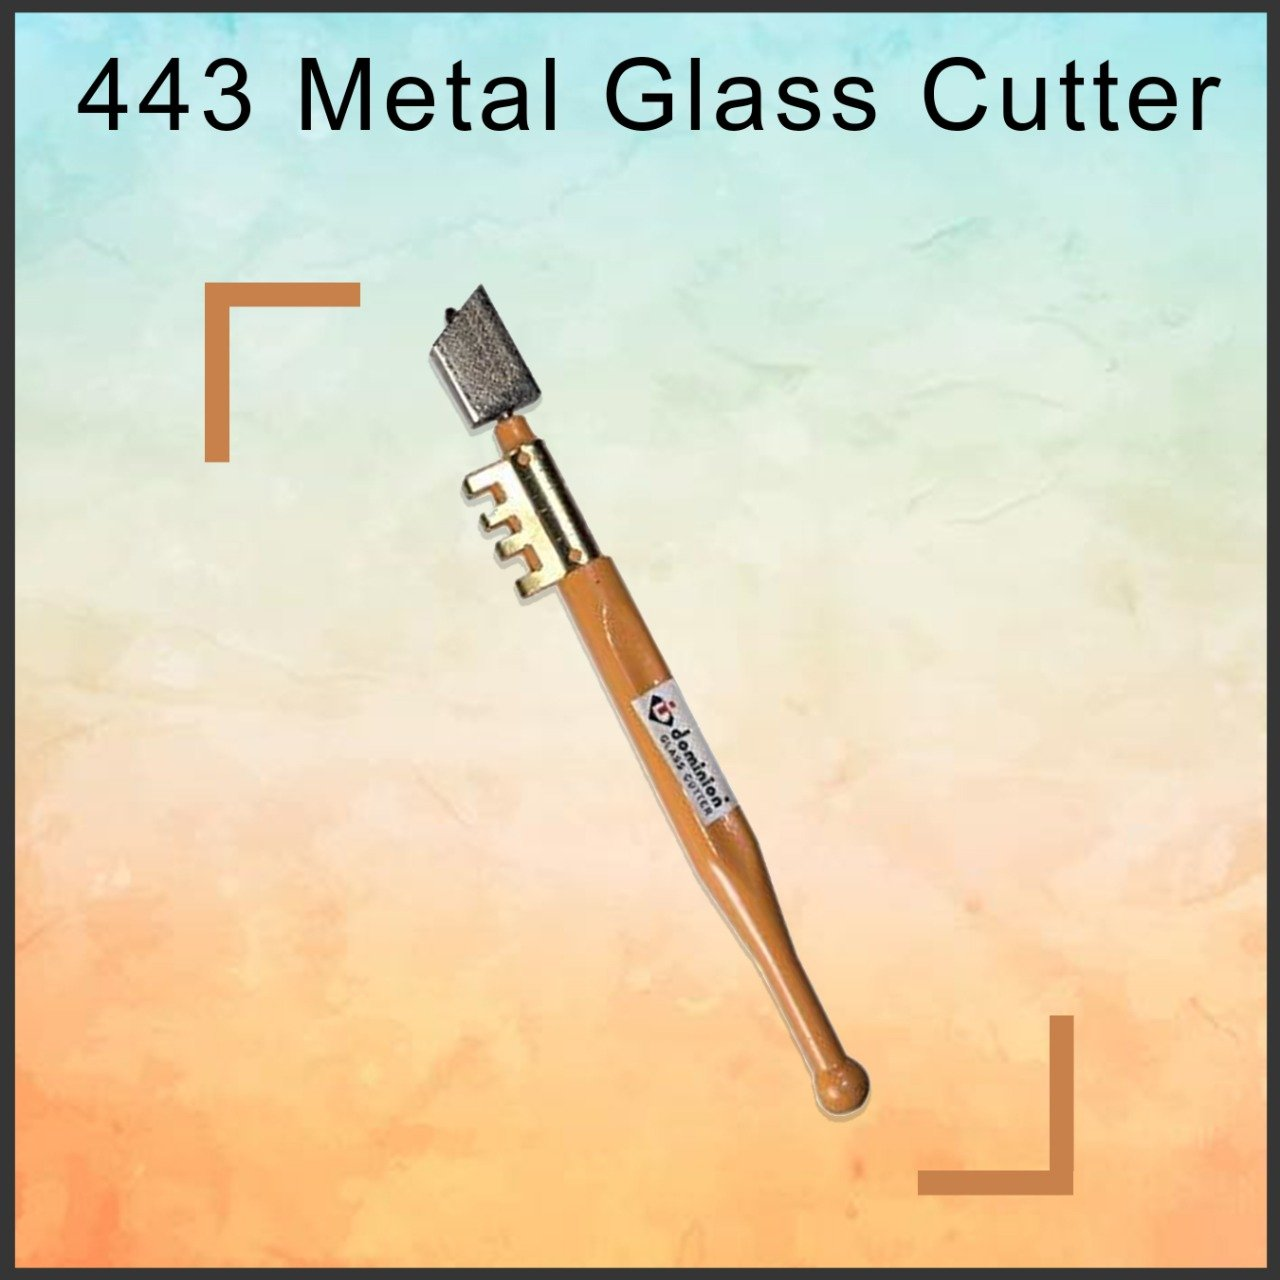 443 Metal Glass Cutter